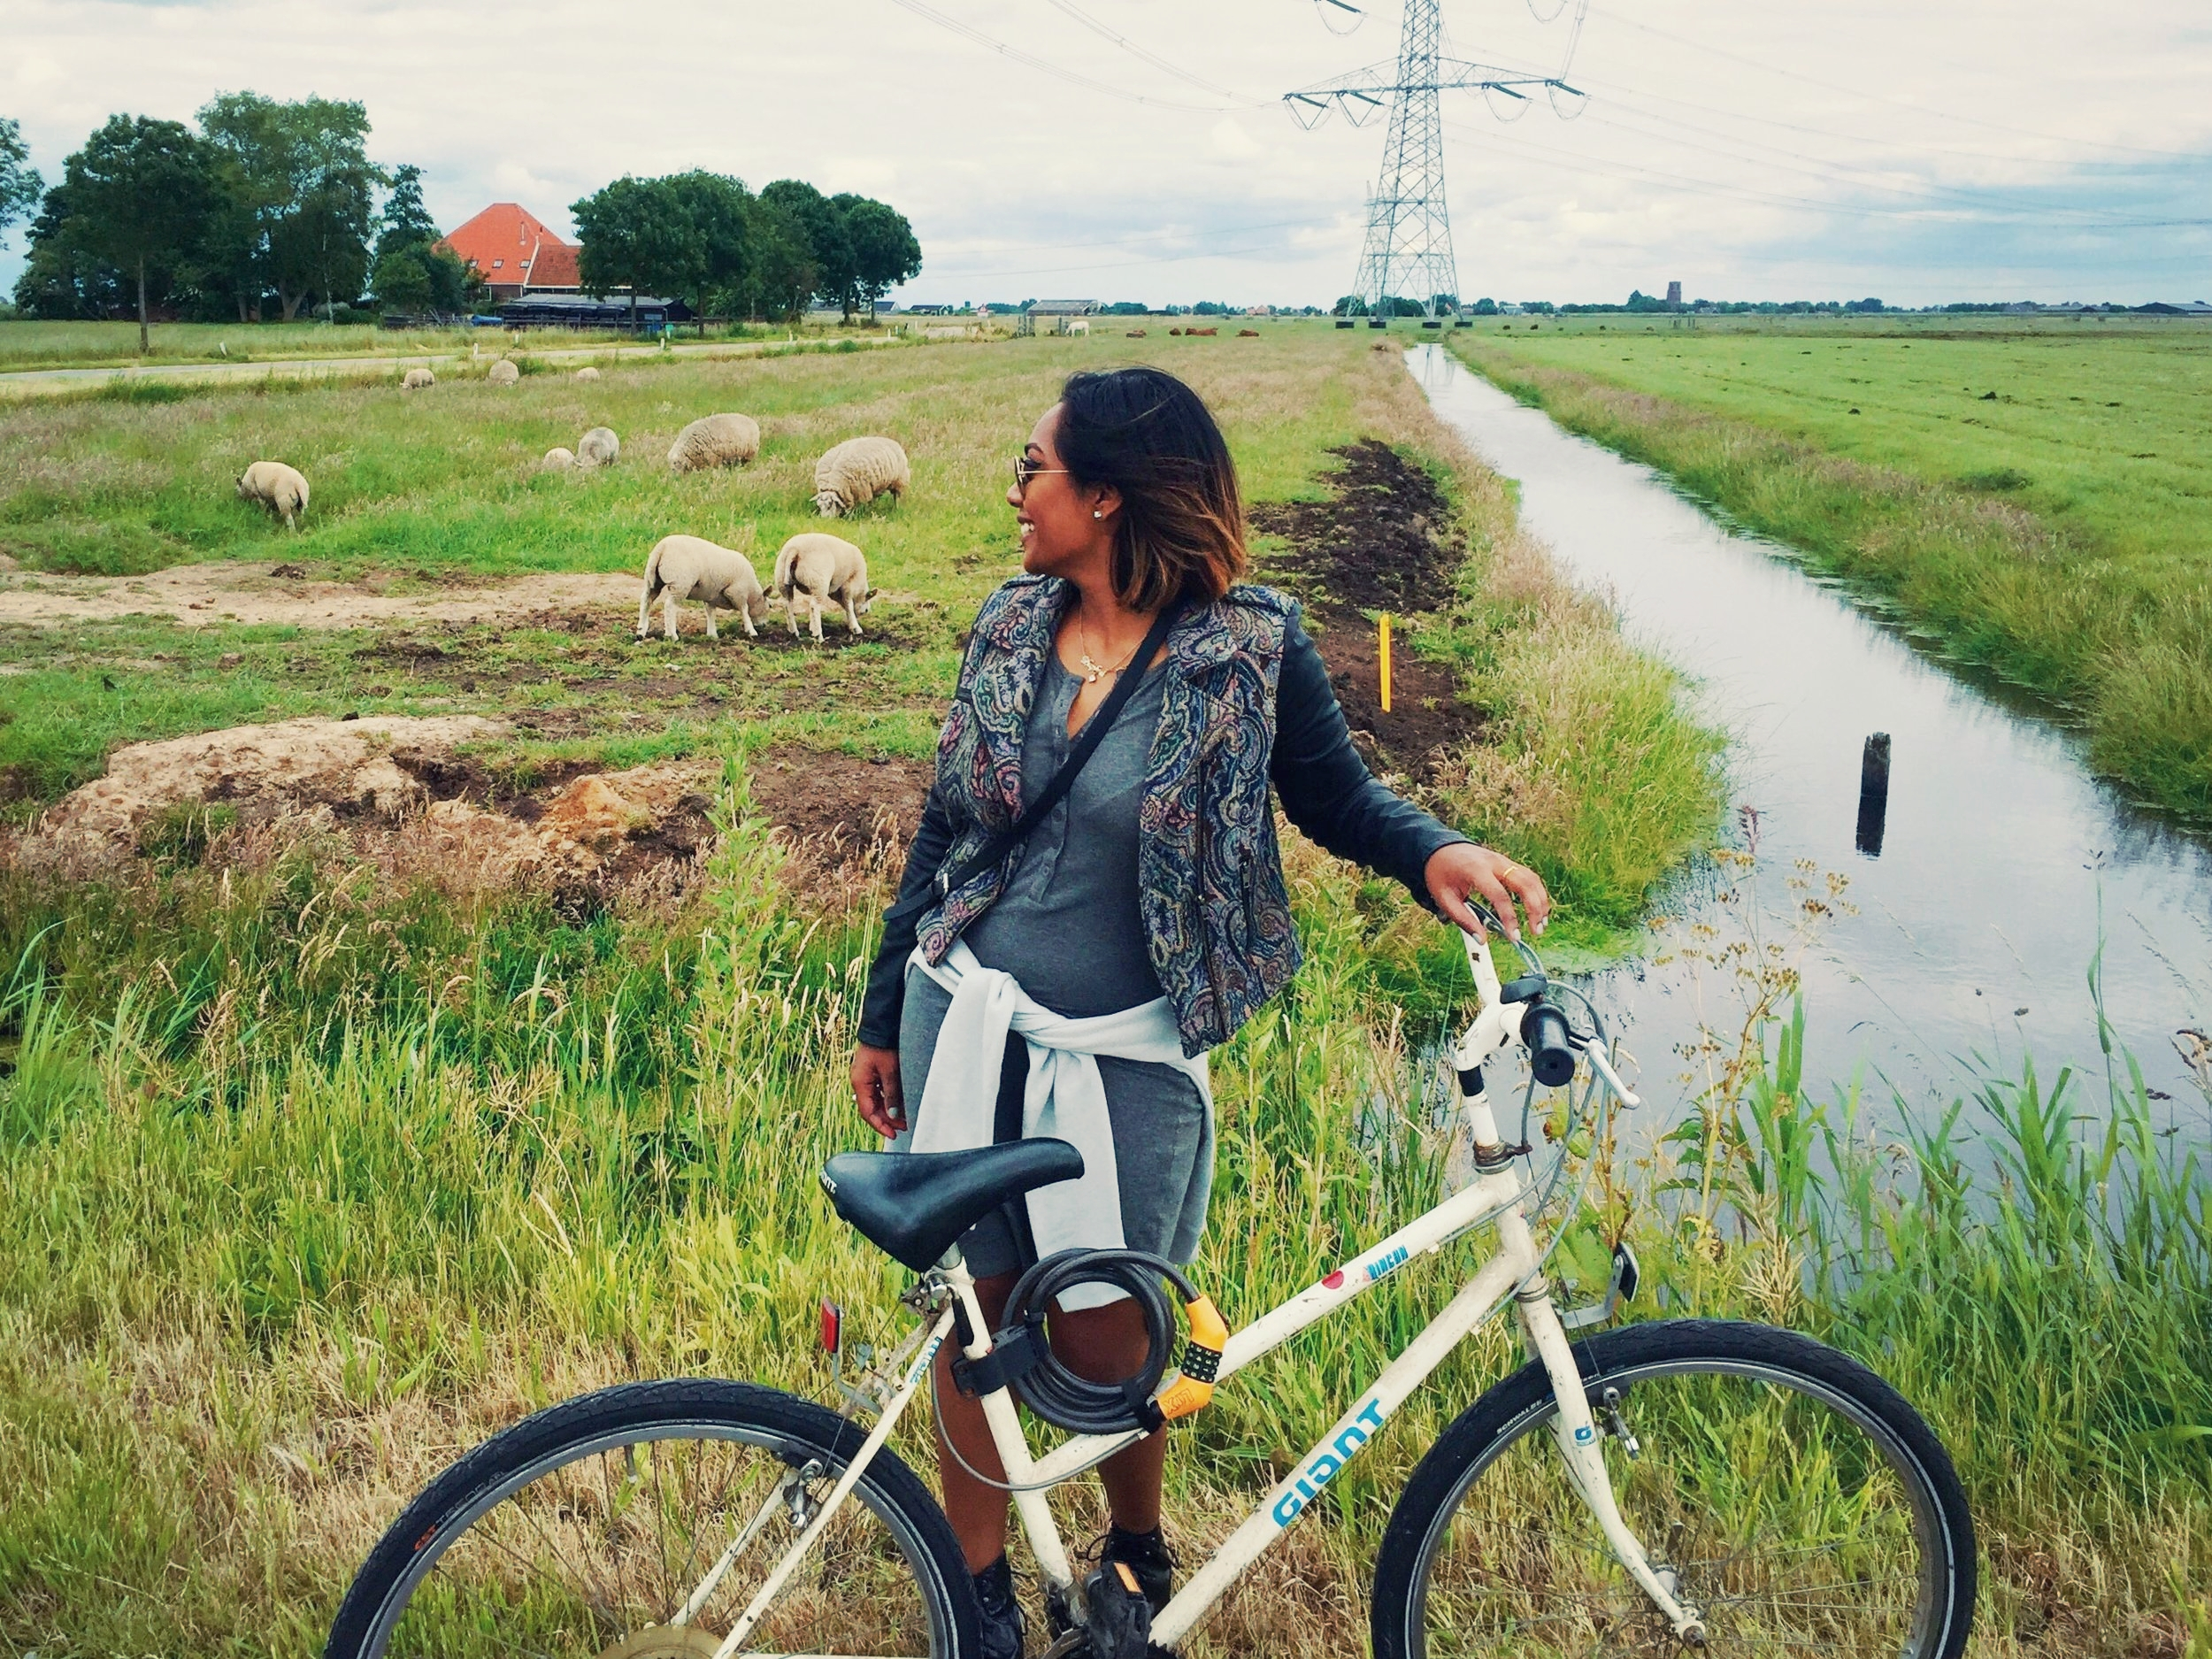 My first layover in Amsterdam, biking in a dress and boots with a heel. *sigh*